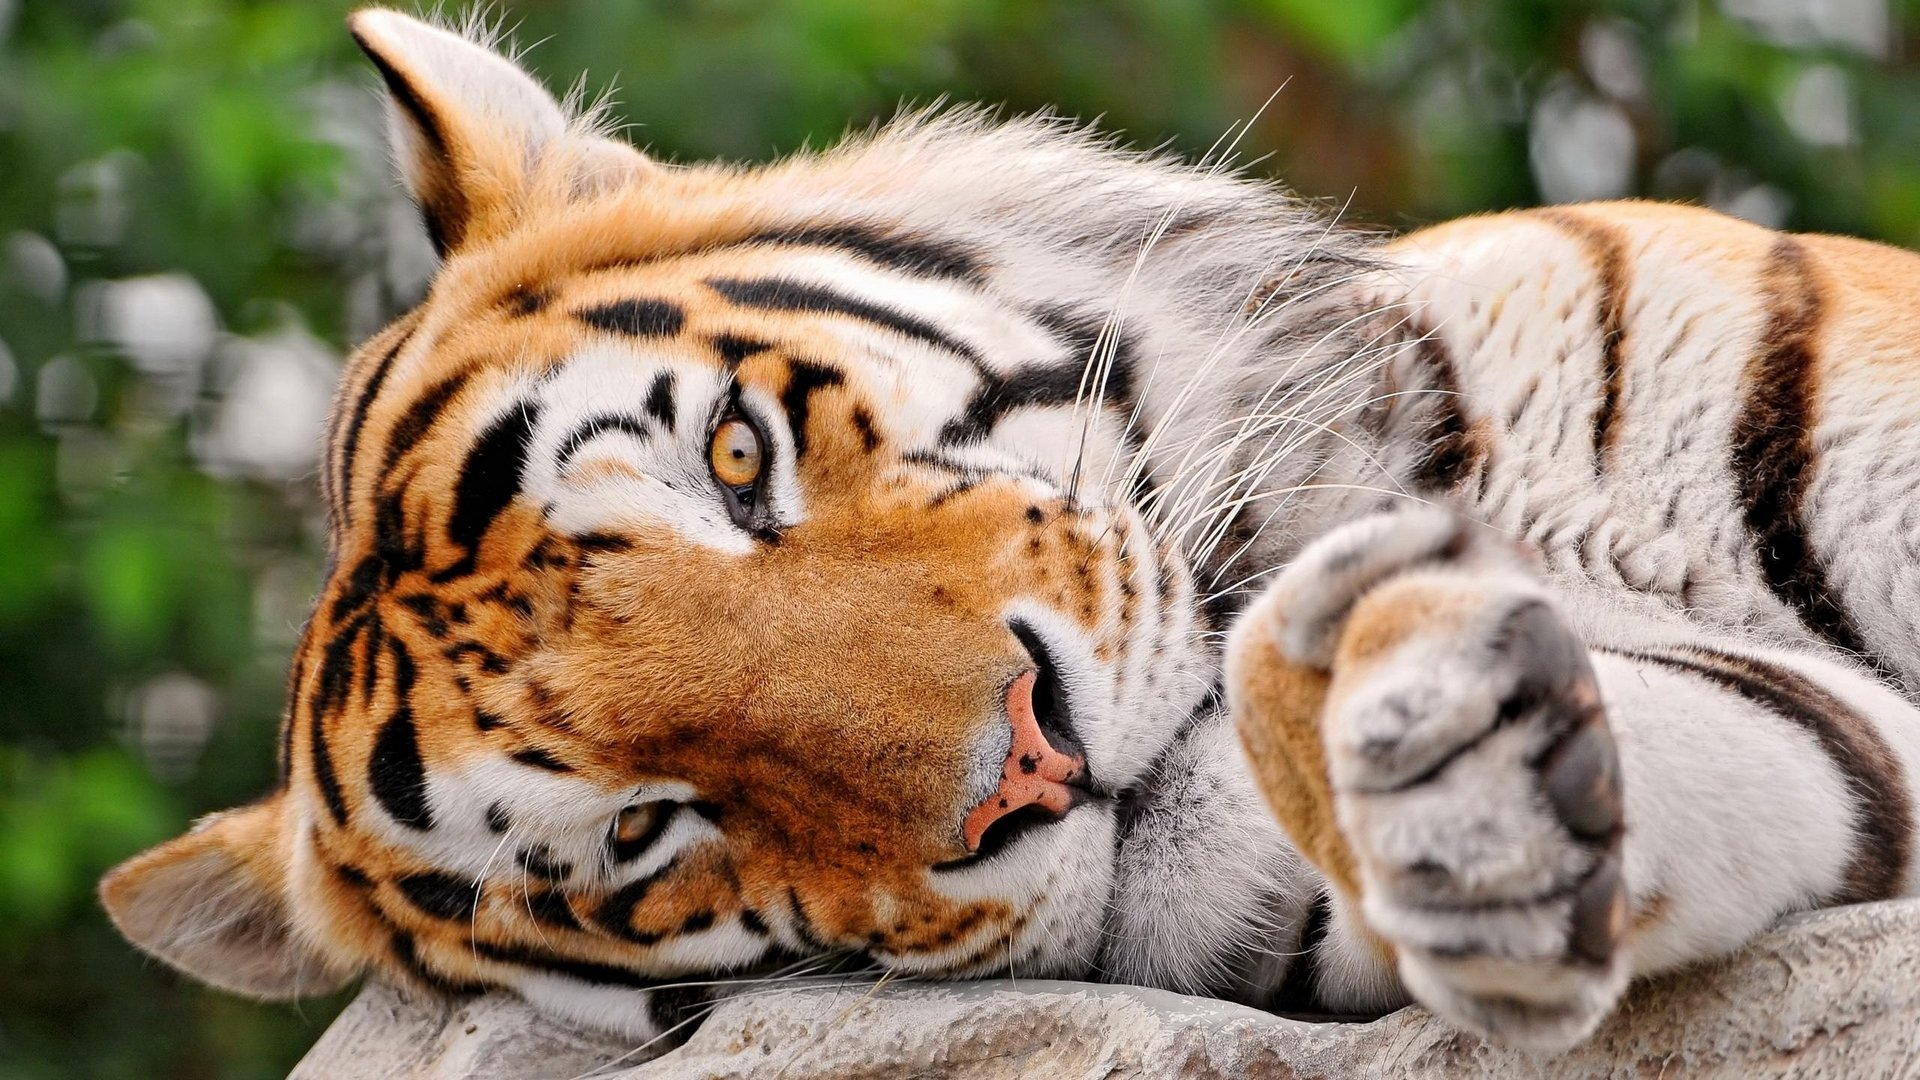 Awesome Tiger free wallpaper ID:115741 for hd 1920x1080 PC